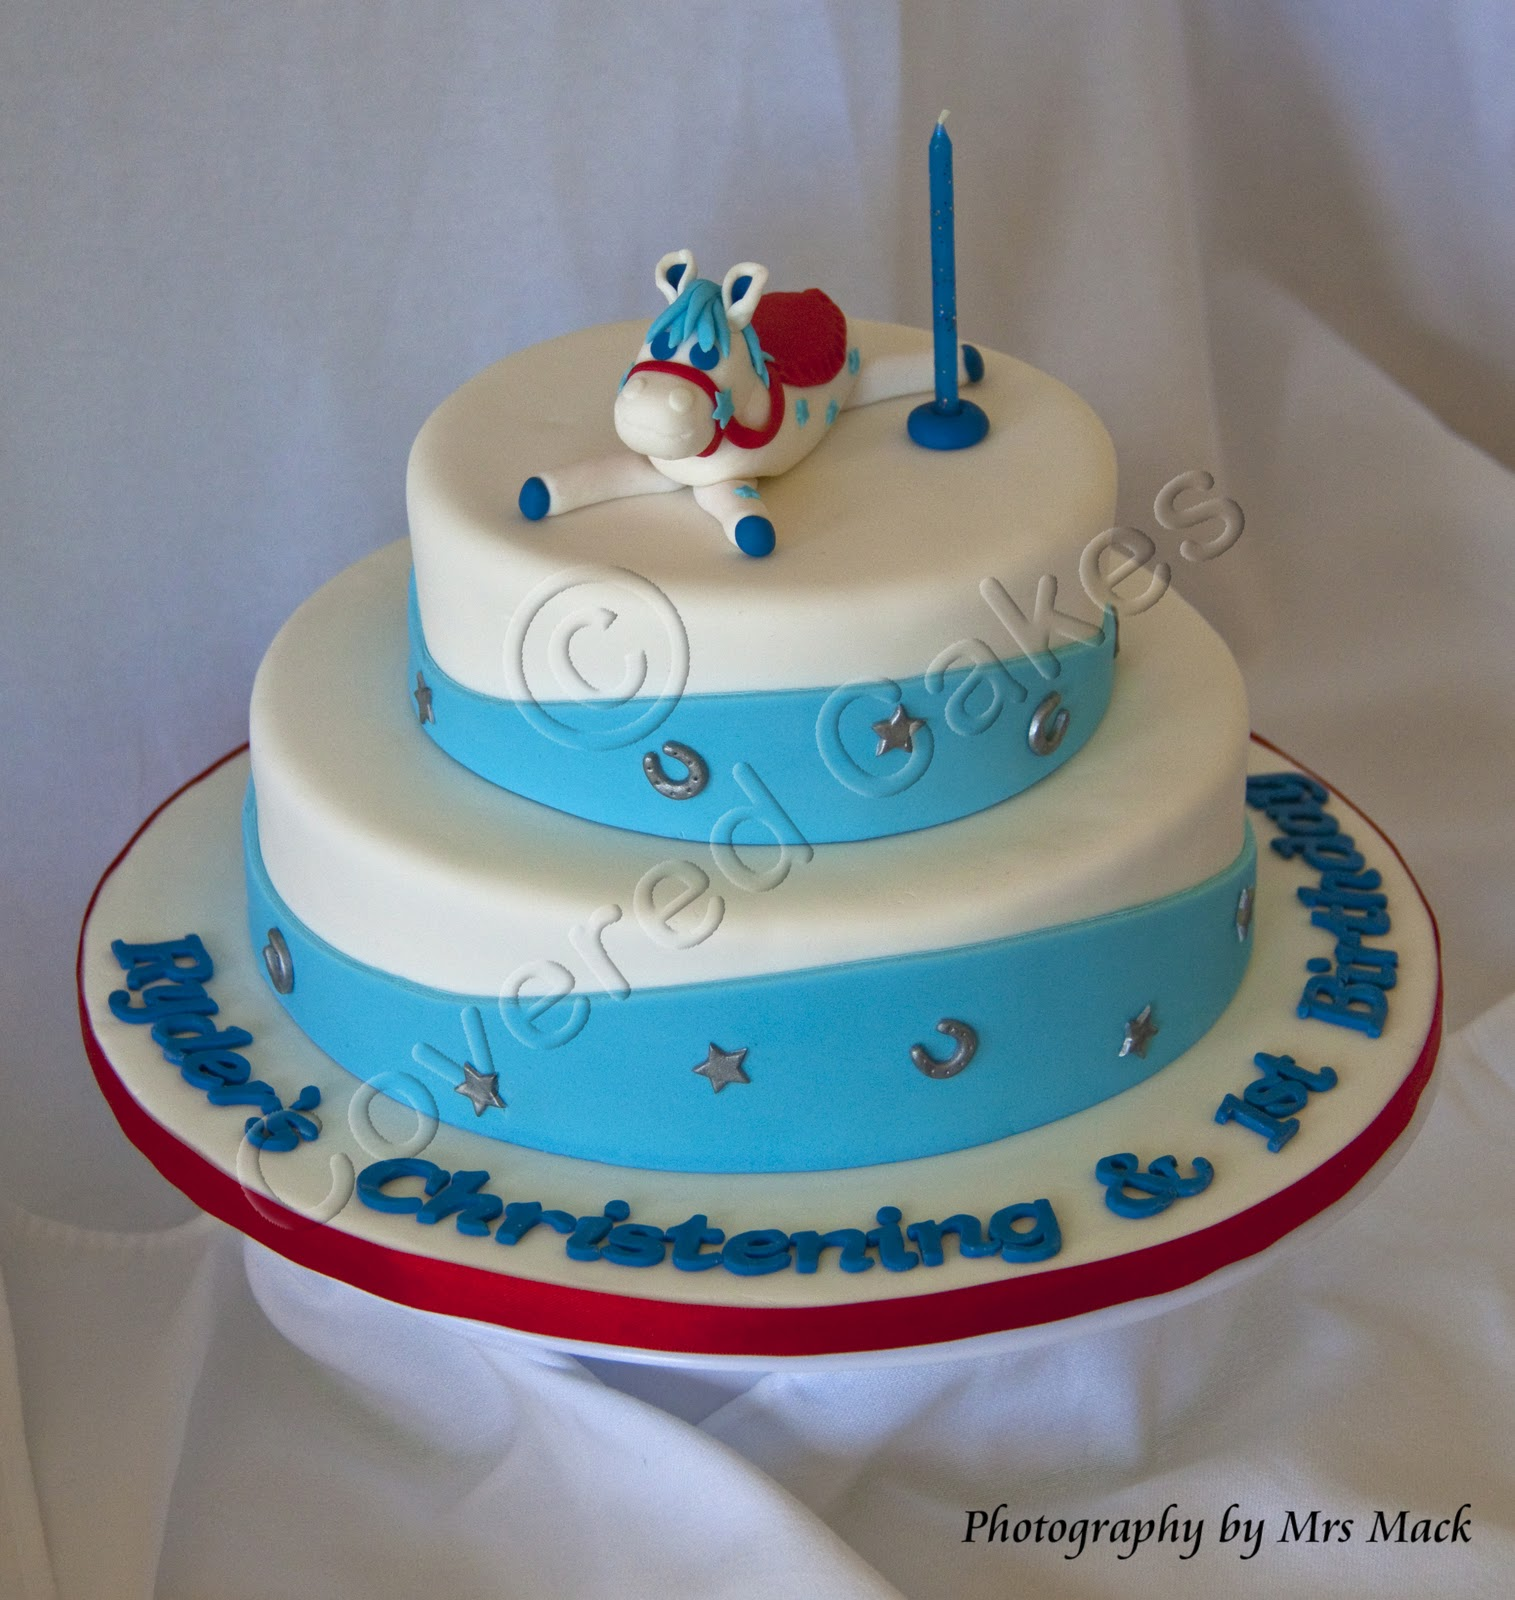 Covered Cakes: Tiered Birthday Cakes